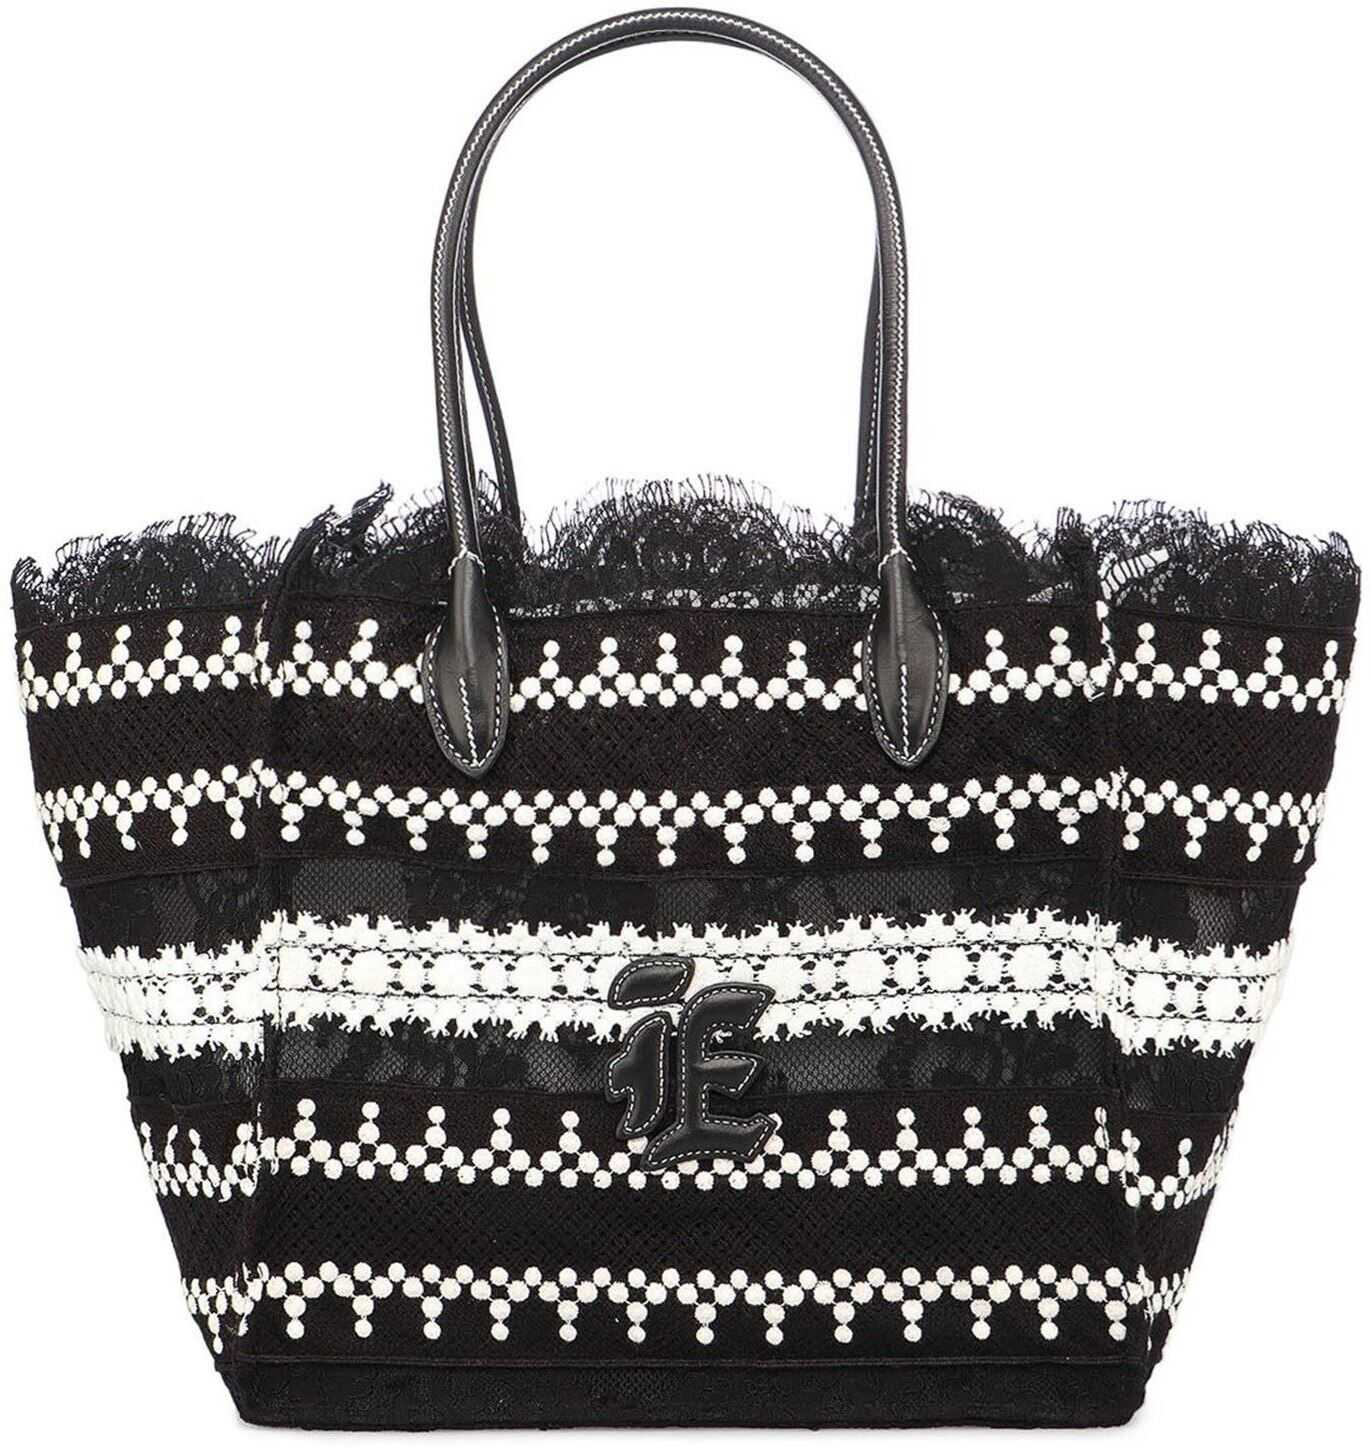 Ermanno Scervino Lace Shopping Bag In Black D383S912OZYB3842 Black imagine b-mall.ro